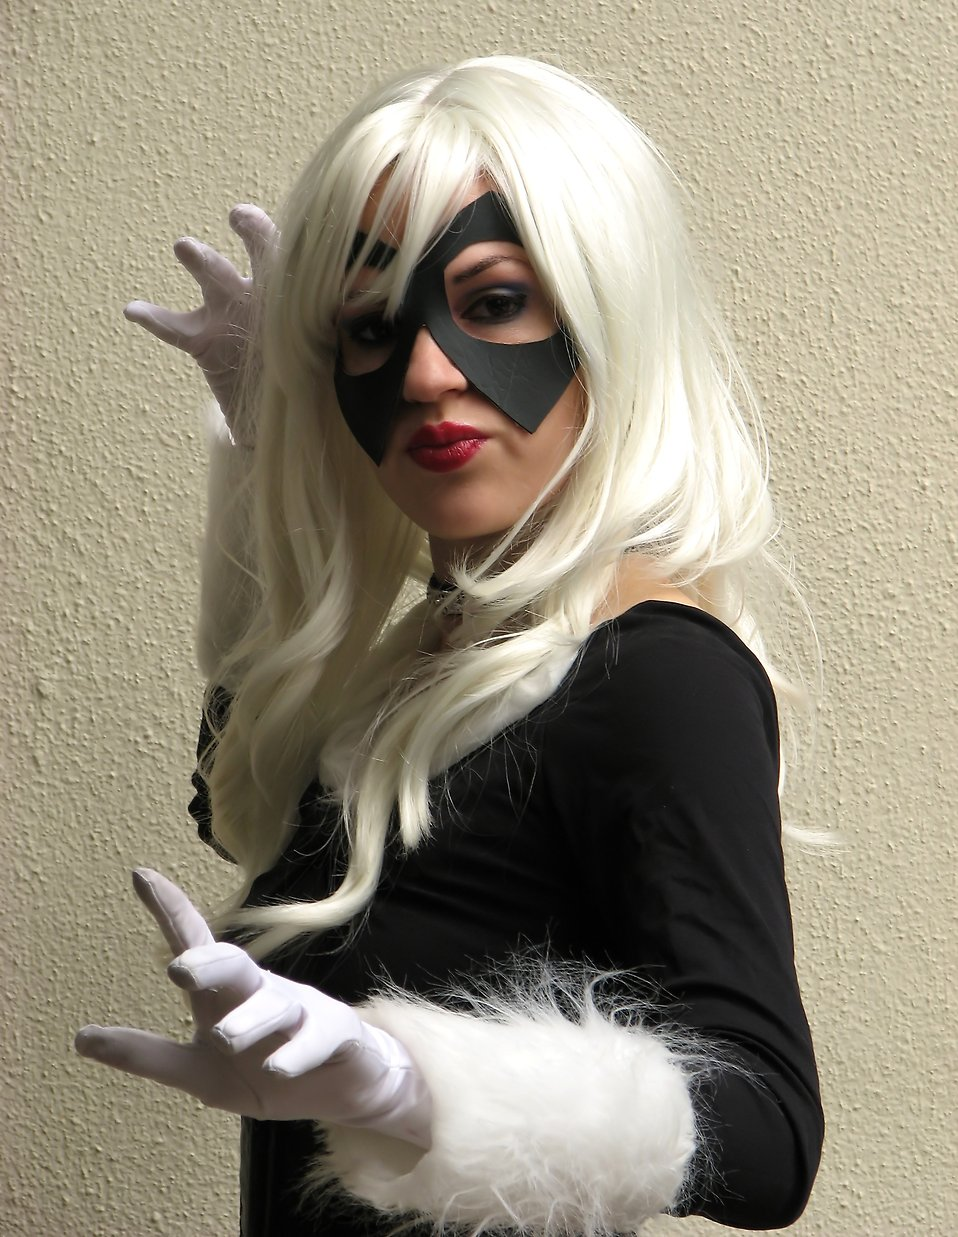 A beautiful girl in a Black Cat costume at Dragoncon 2009 in Atlanta, Georgia : Free Stock Photo